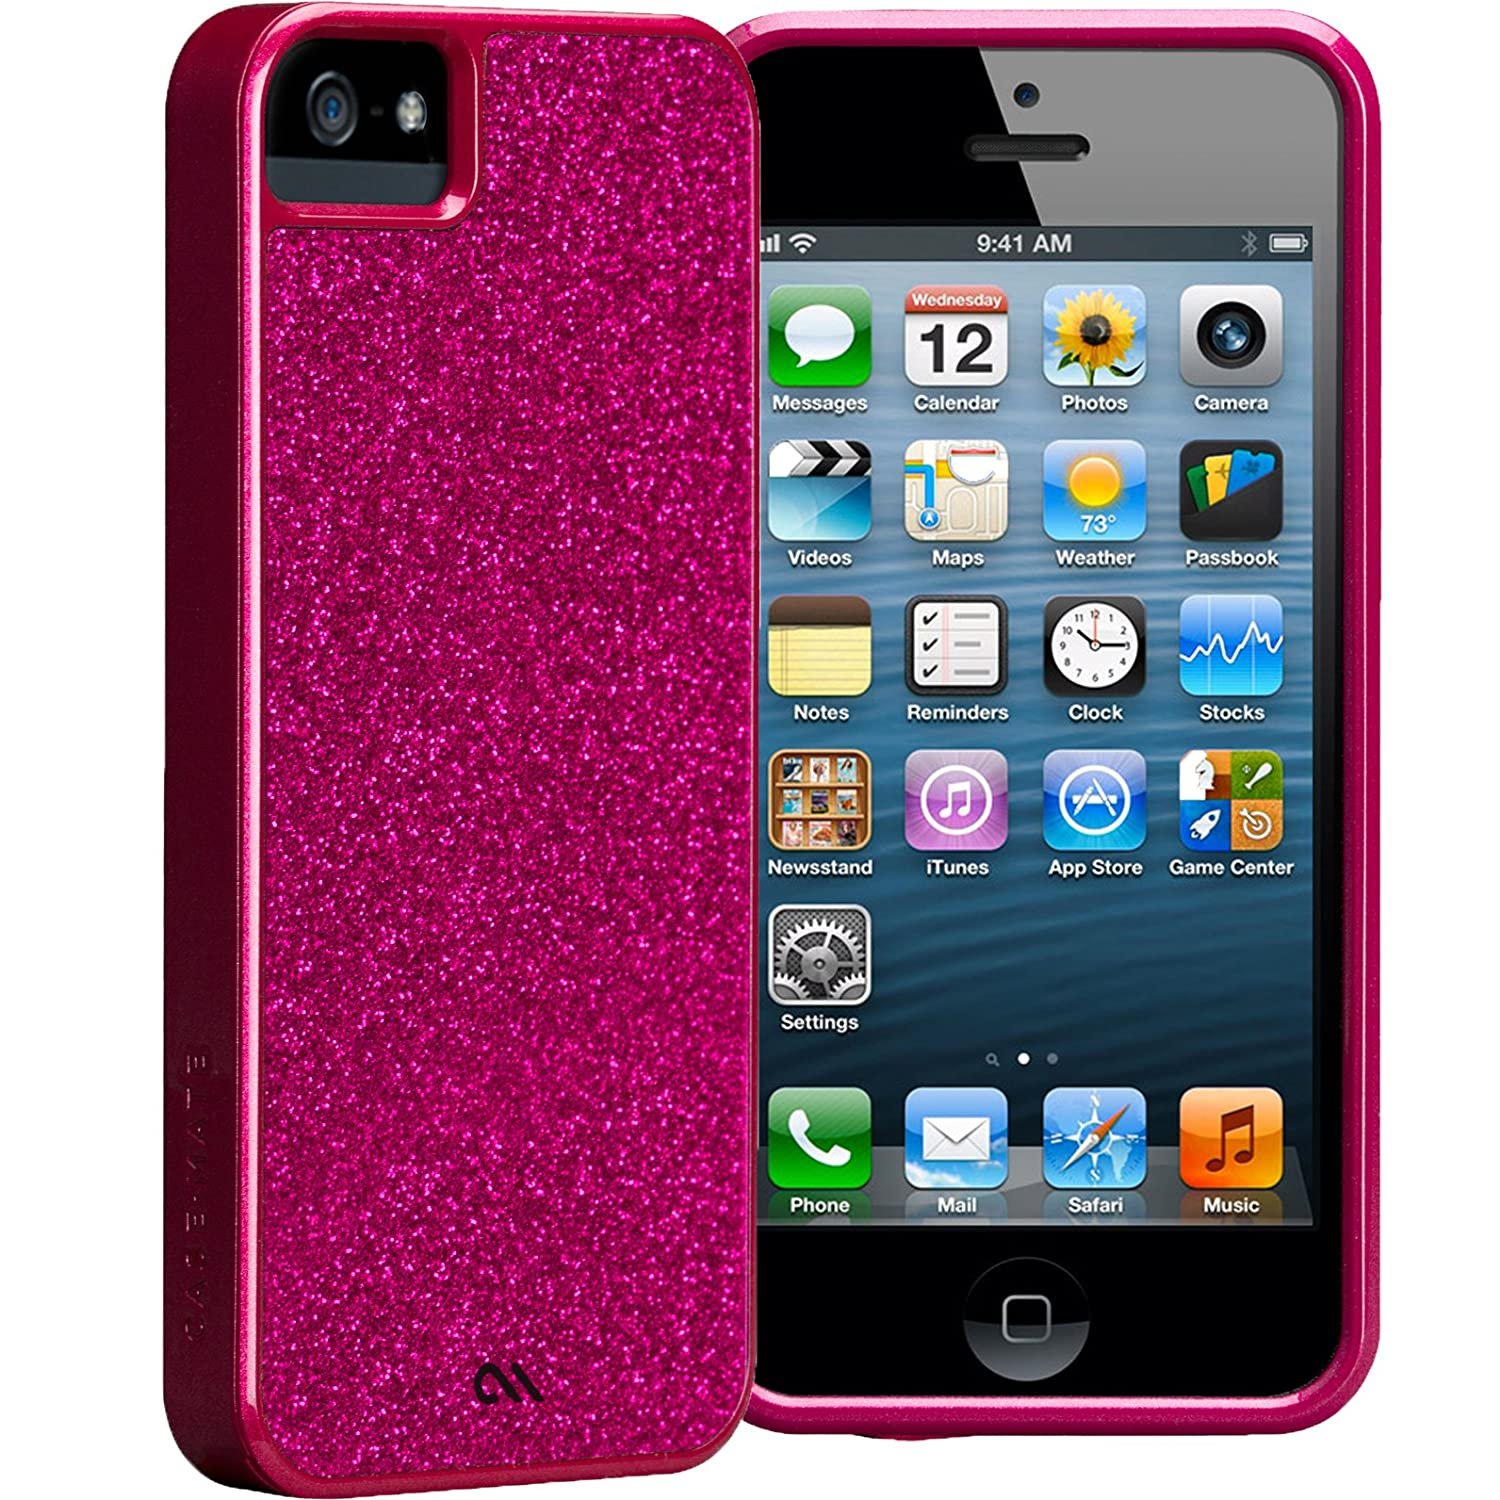 Medical research and corporate technology case mate iphone 4 case - Amazon Com Case Mate Glitter Glam Pink Cover For Apple Iphone 5 Cell Phones Accessories